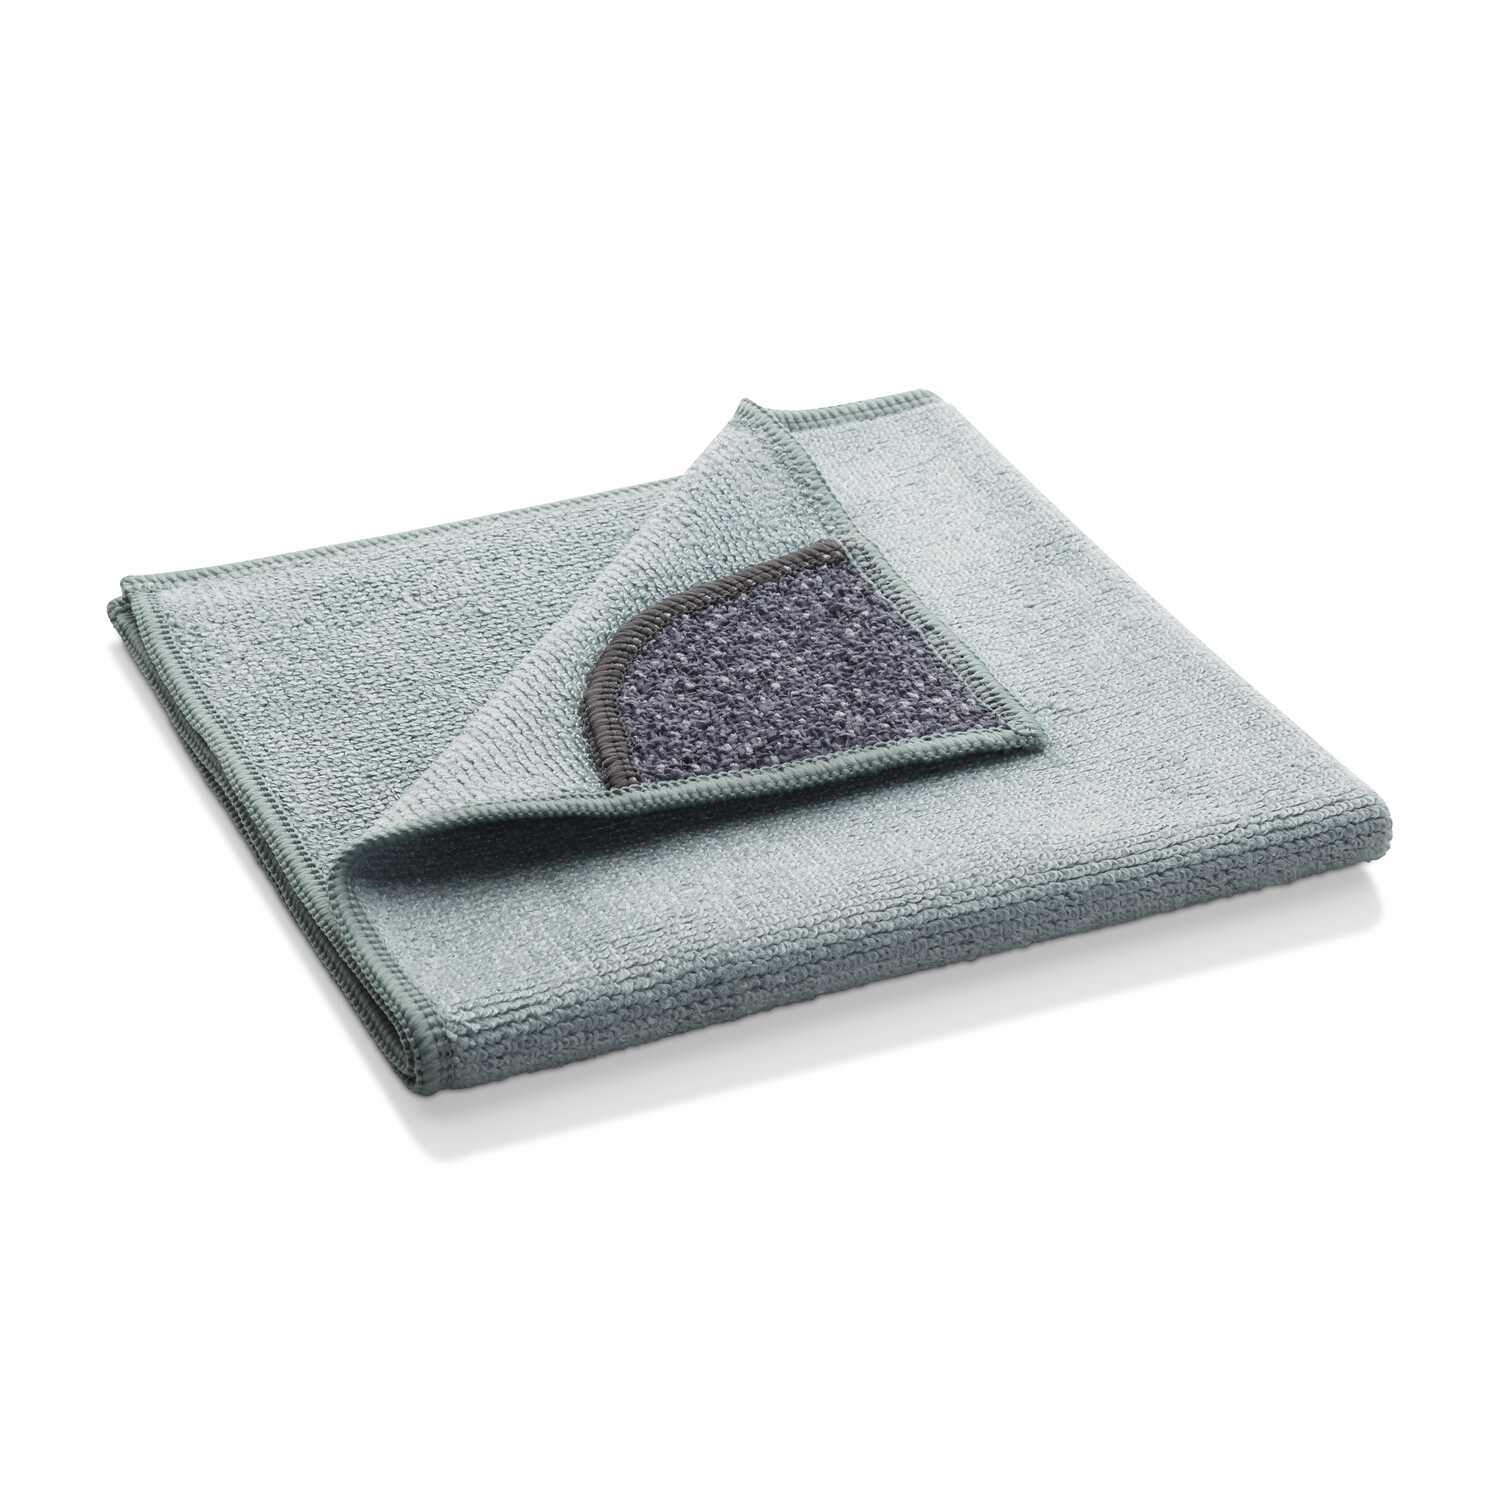 E-Cloth  Kitchen  Polyamide/Polyester  Cleaning Cloth  12-1/2 in. W x 12-1/2 in. L 1 pk